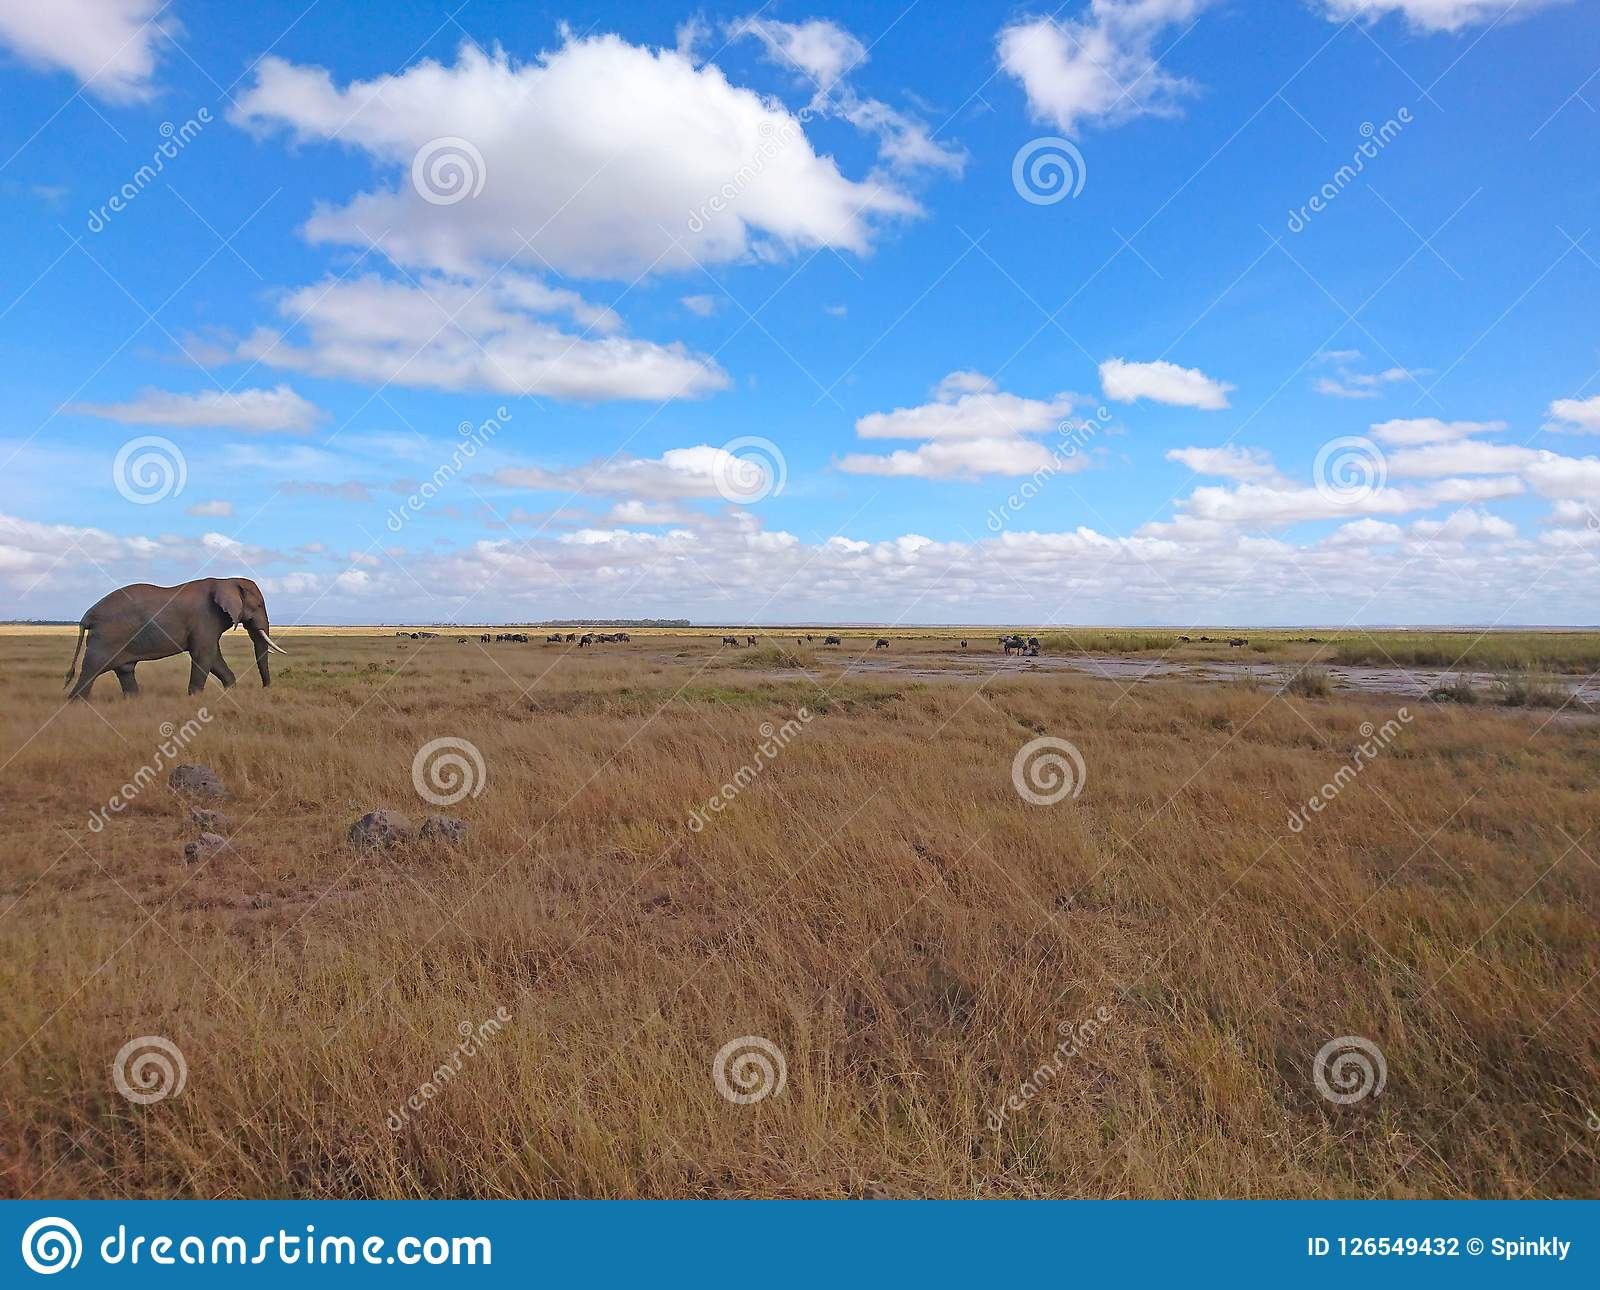 Landscape image background with elephant